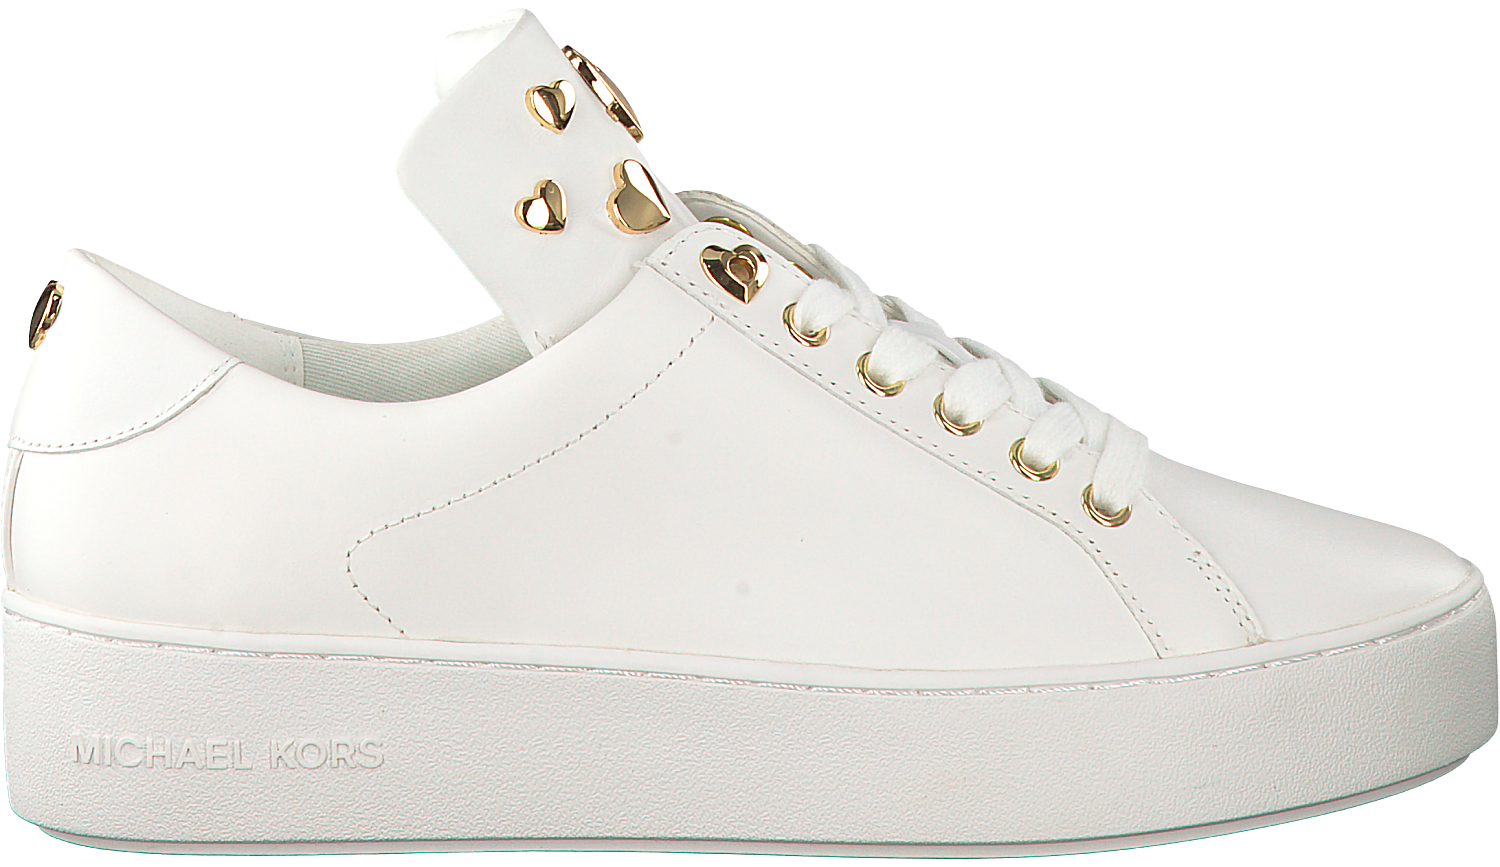 4a31c83fc47 Witte MICHAEL KORS Sneakers MINDY LACE UP - large. Next